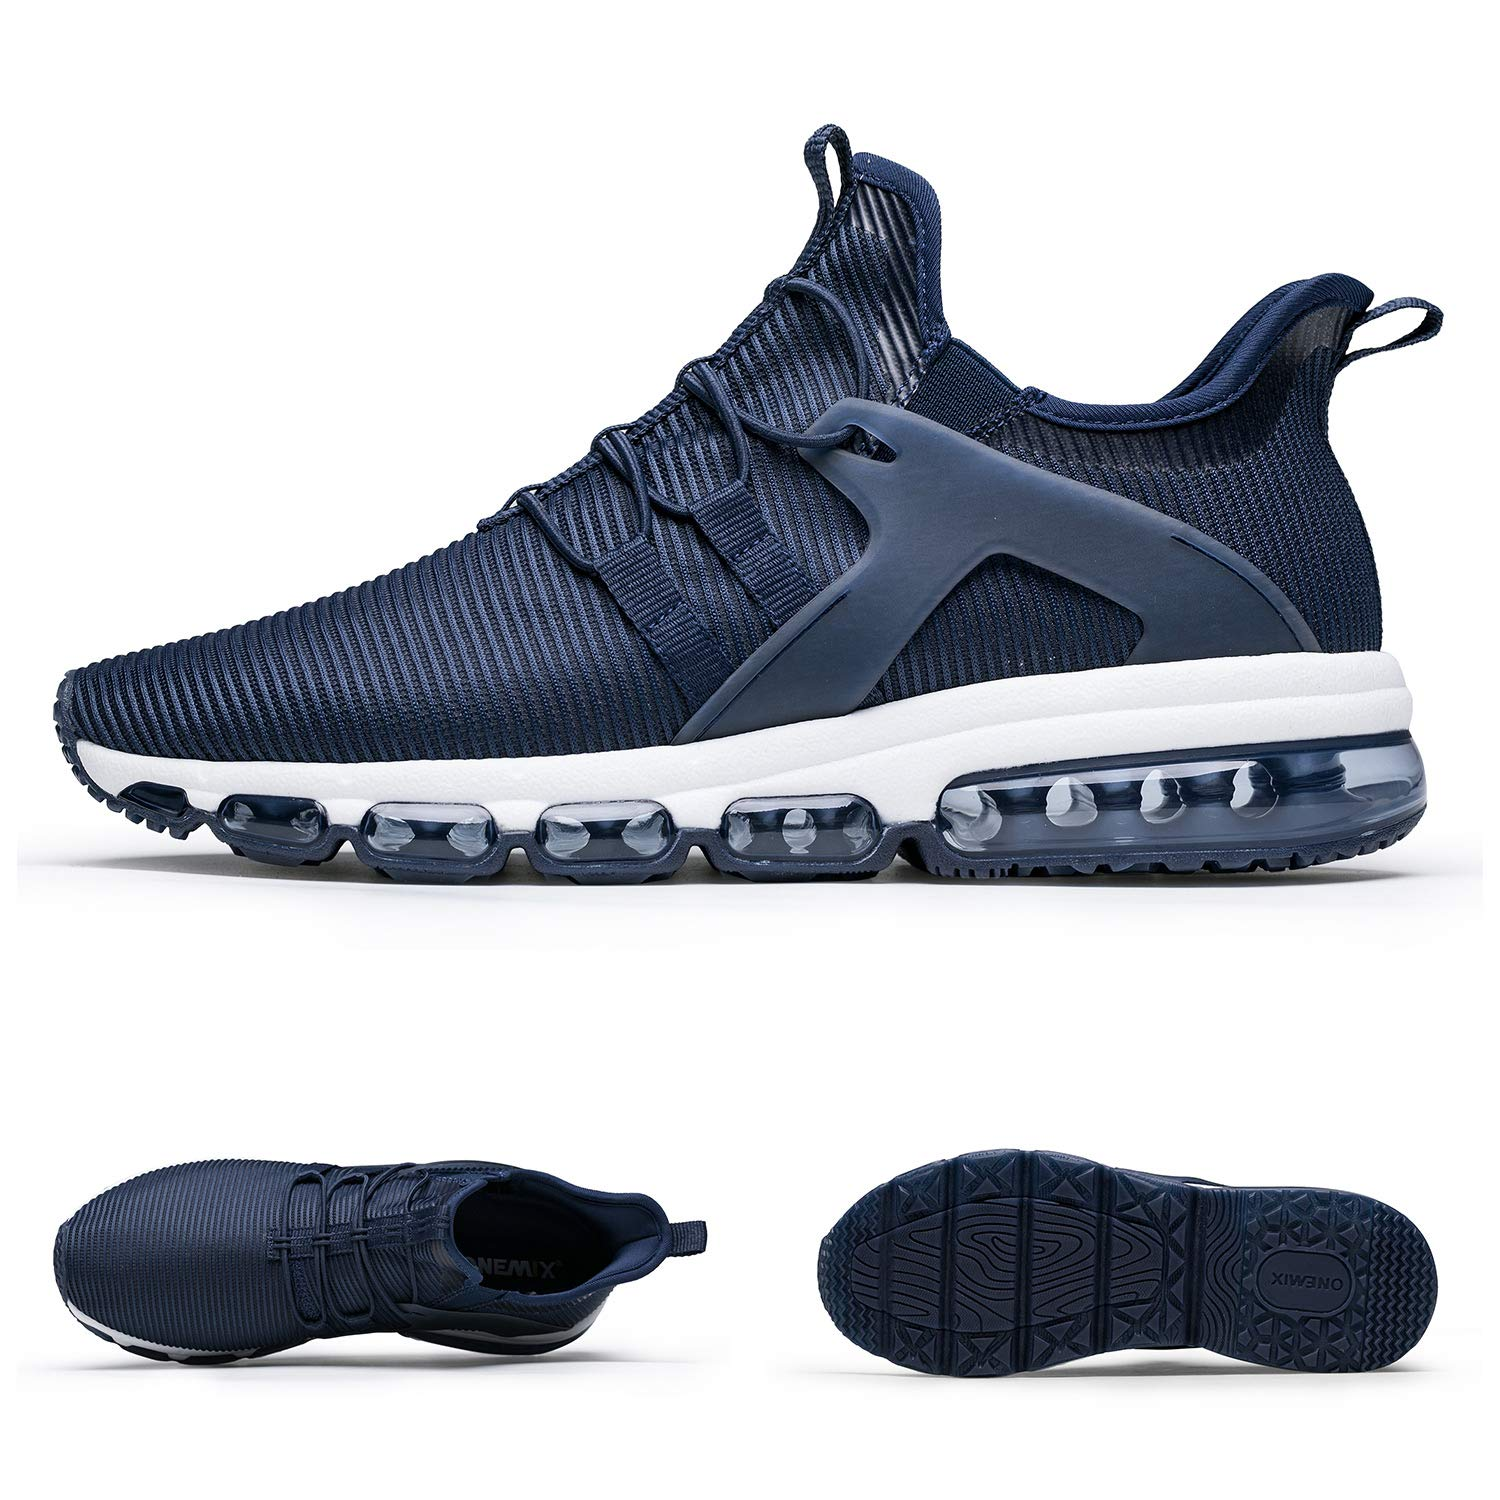 competitive price da5e3 a3946 Amazon.com   ONEMIX Men s Running Shoes Fashion Slip On Sneakers Breathable  Mesh Athletic Lightweight Sports Walking Training Shoes   Shoes